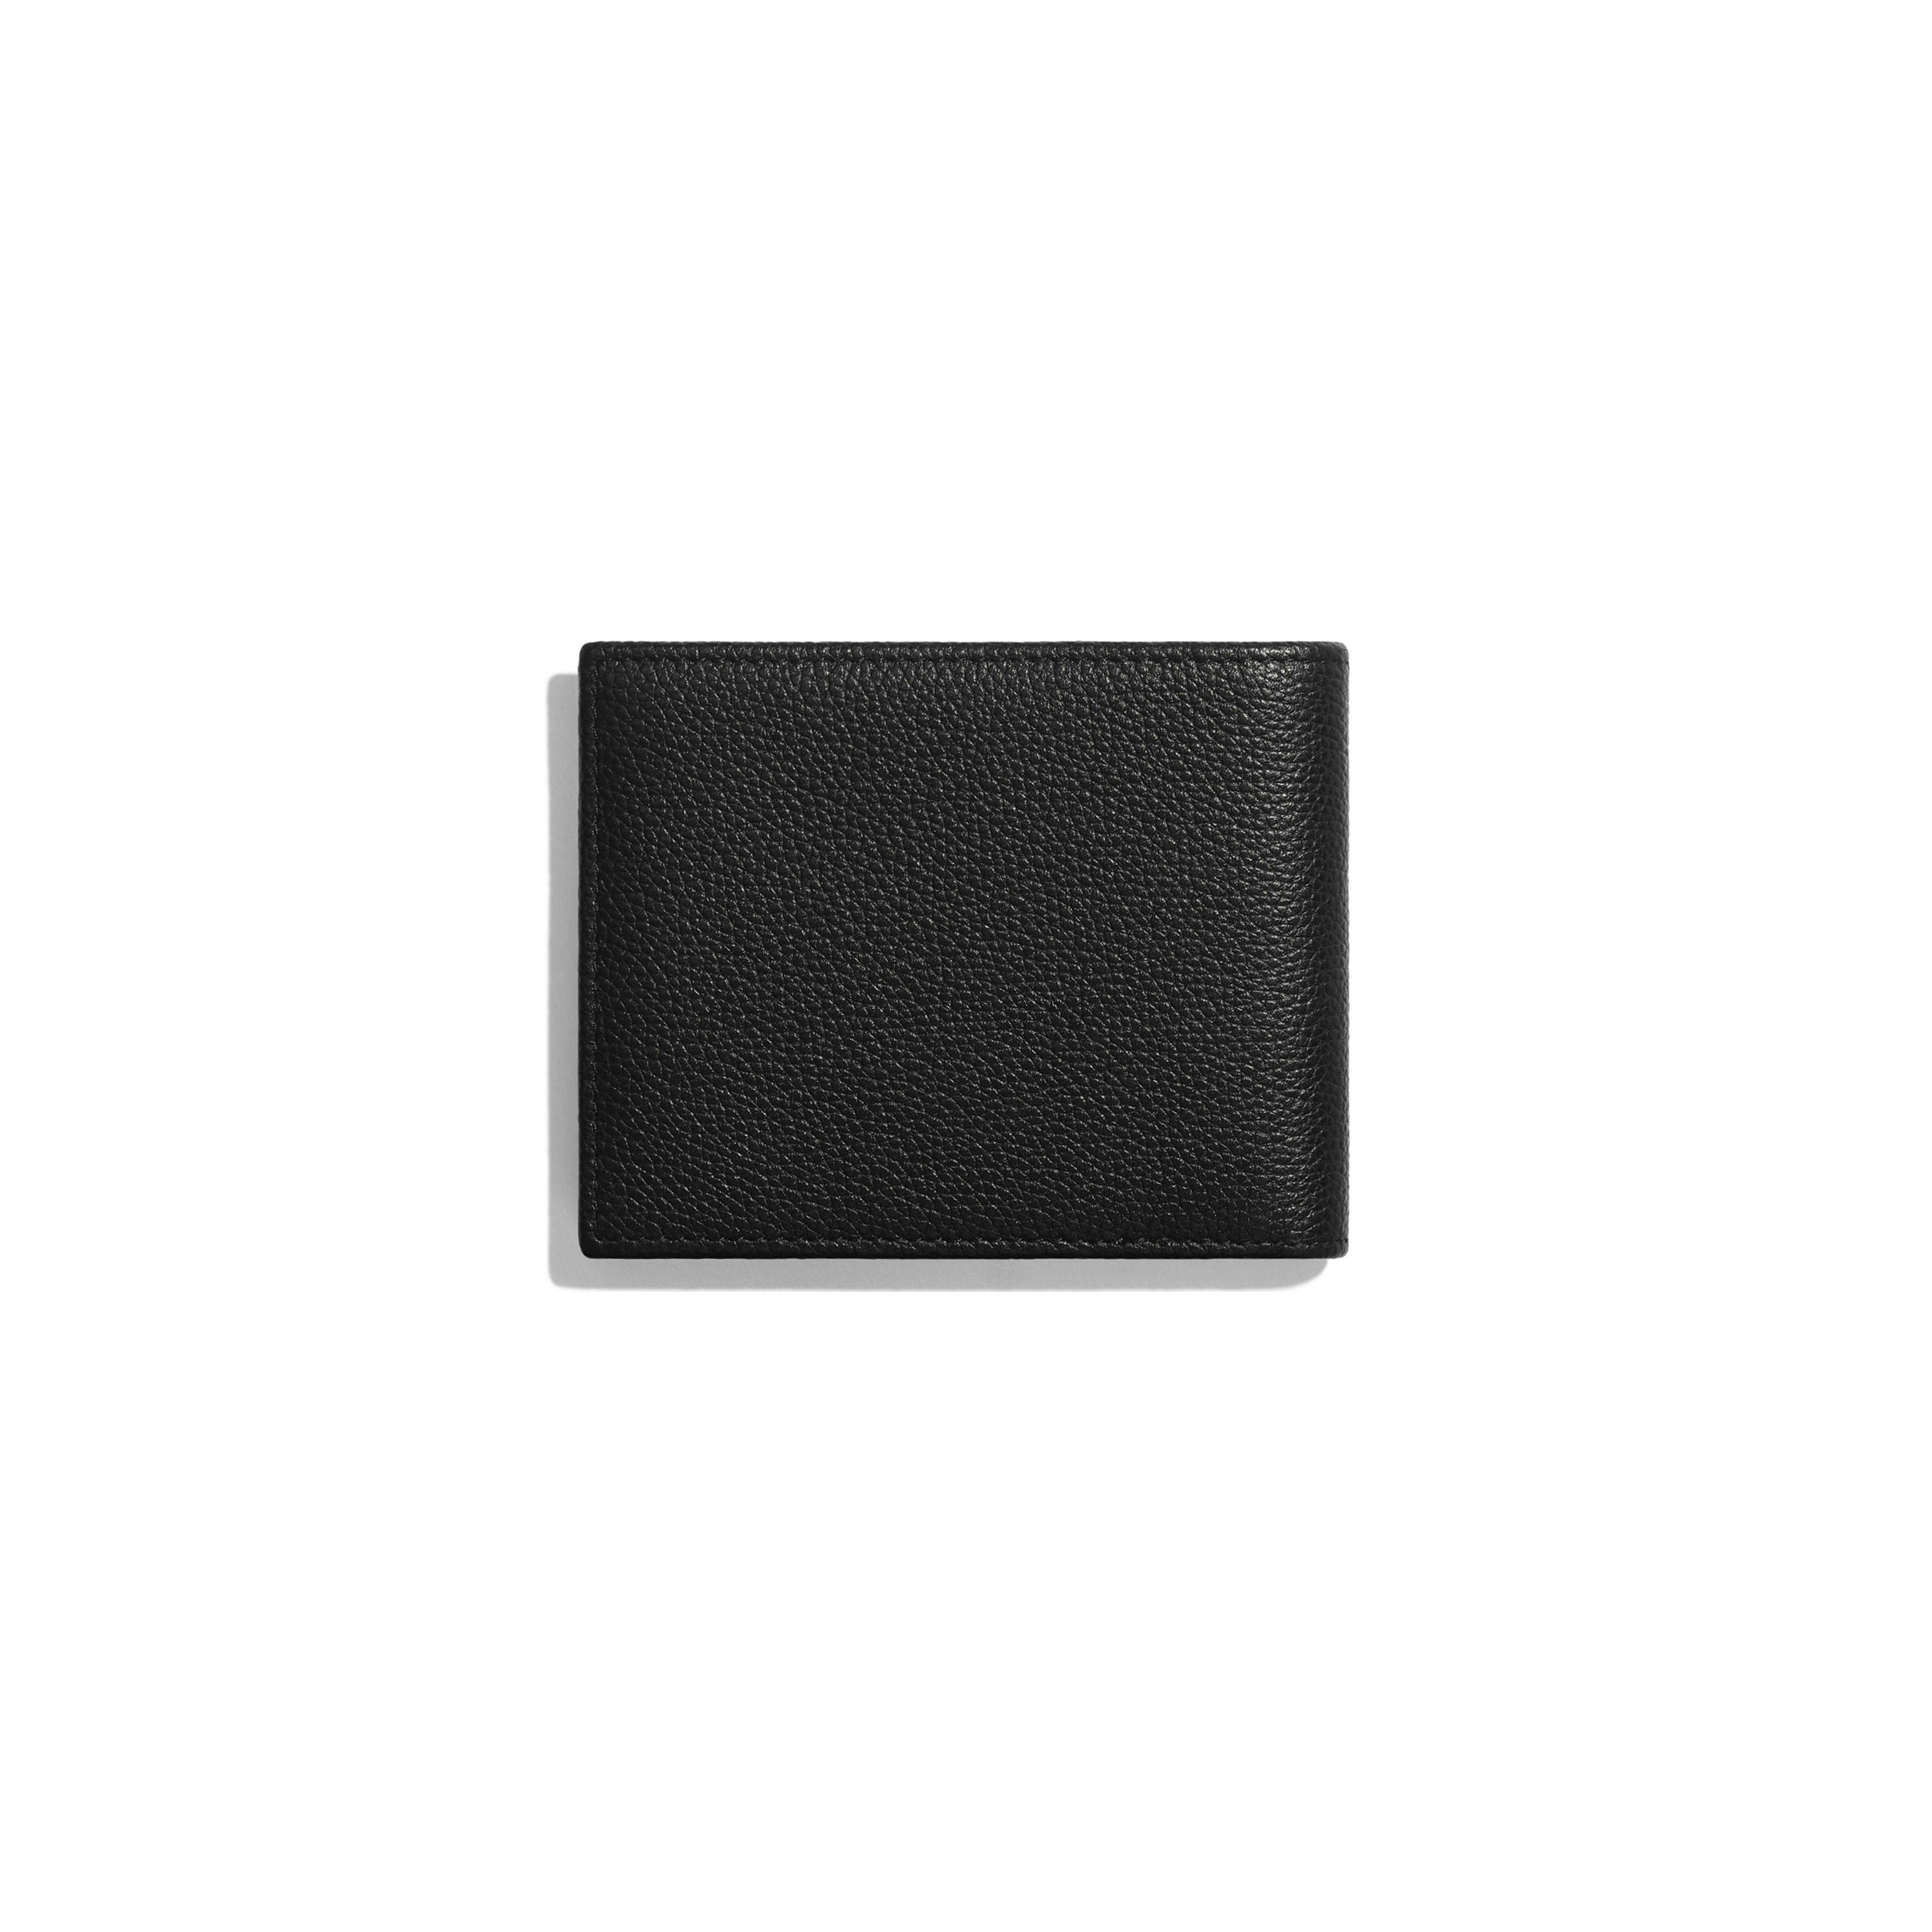 Small Flap Wallet - Black - Grained Calfskin & Ruthenium-Finish Metal - Alternative view - see full sized version